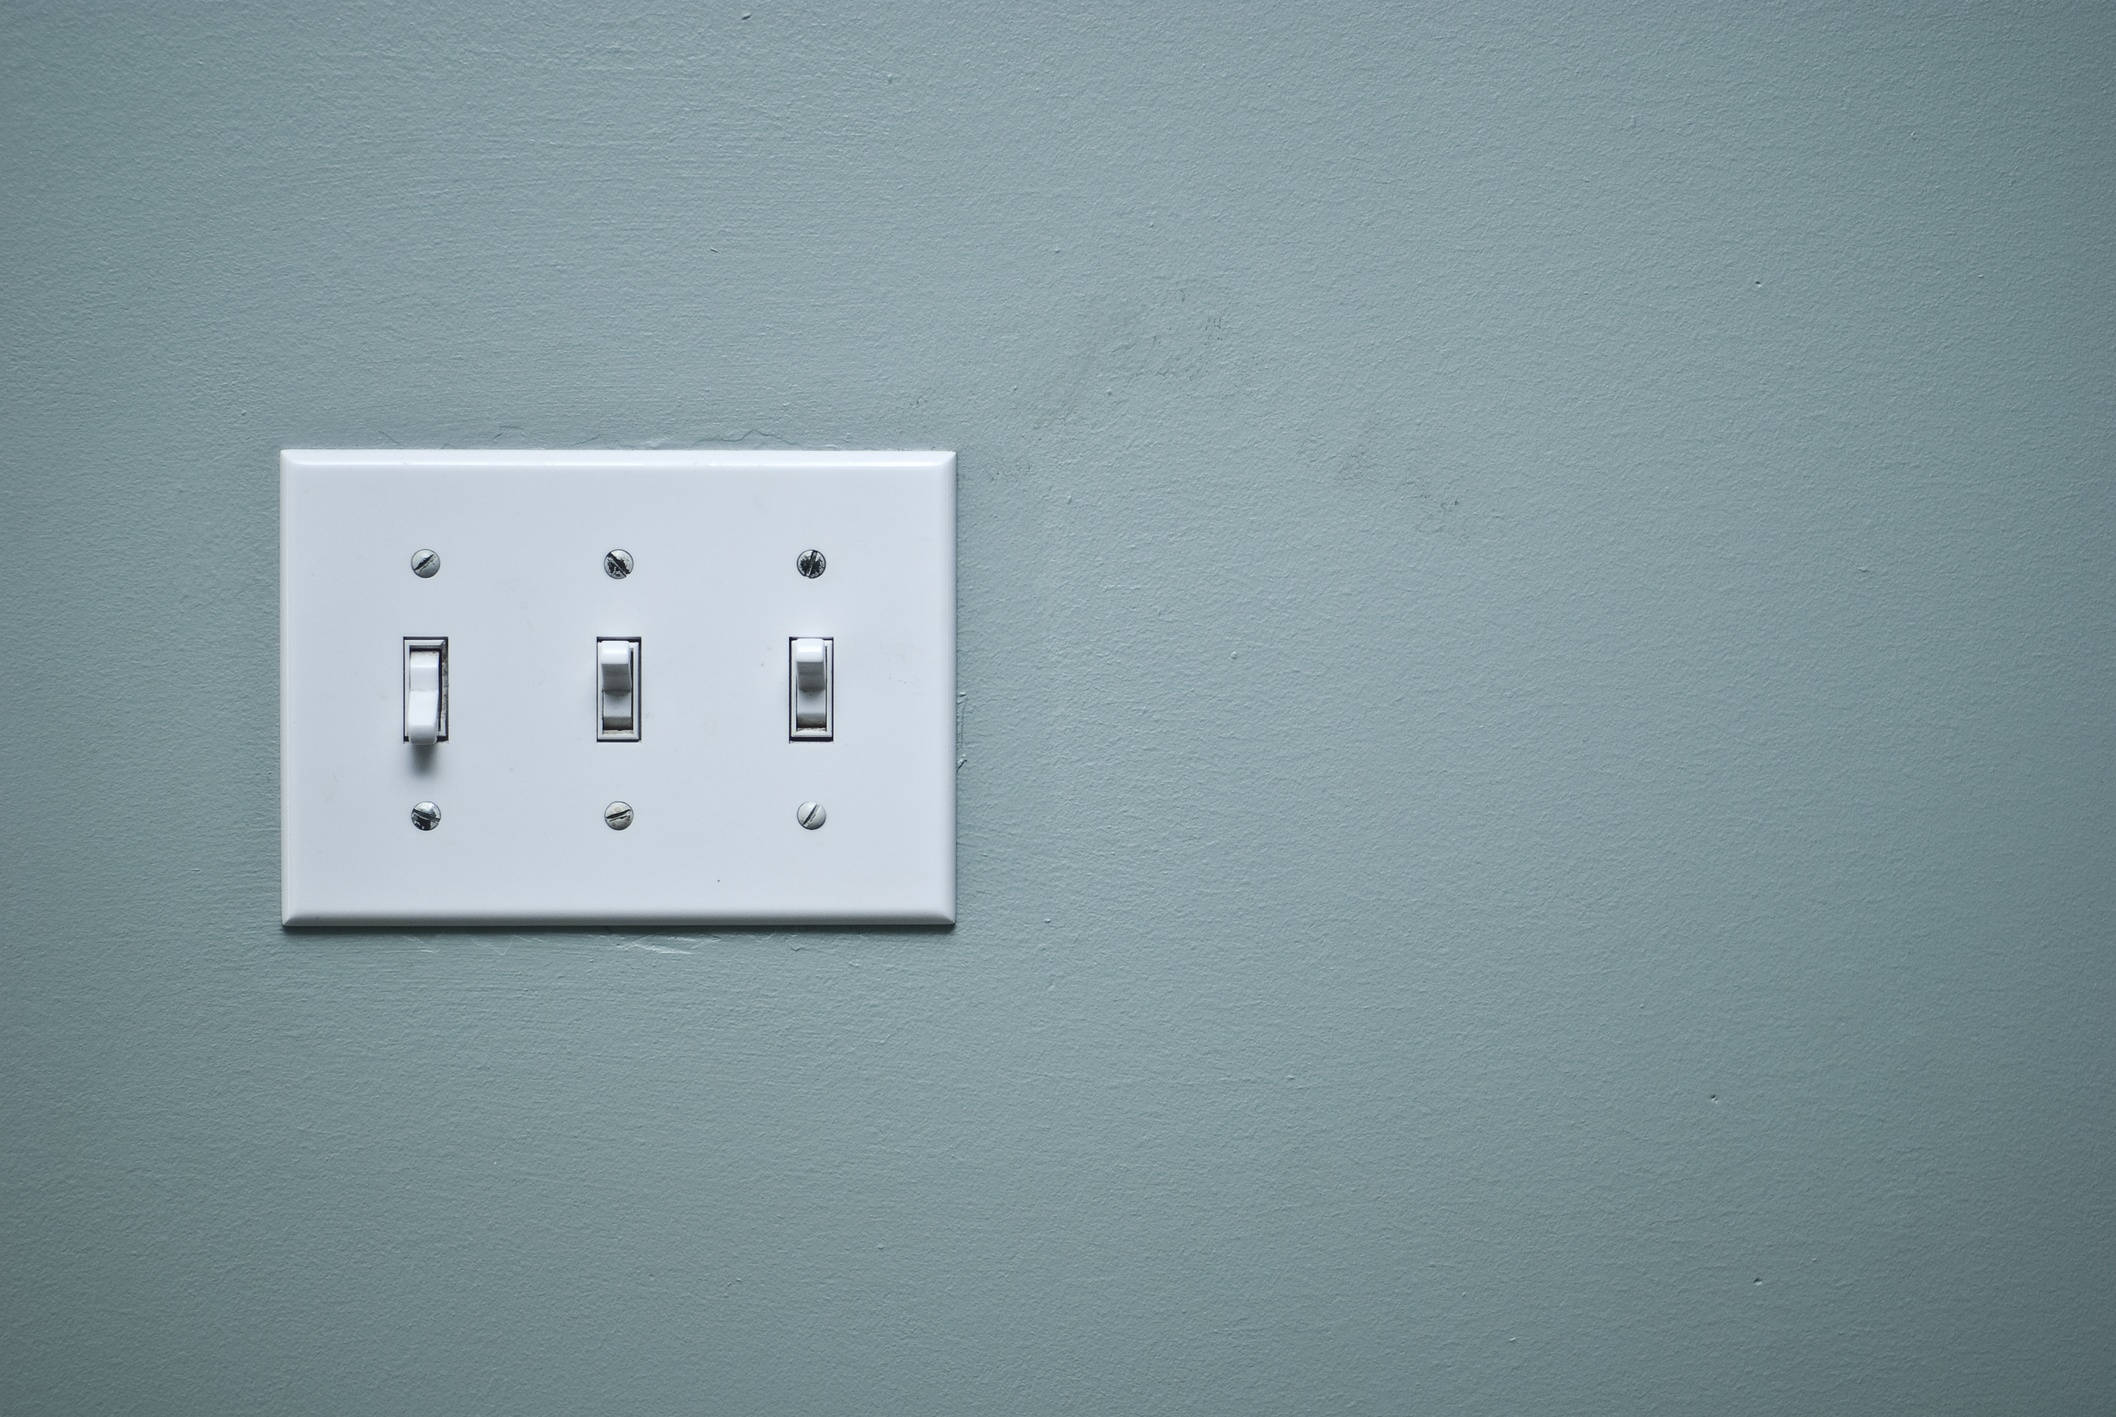 Light switch on a gray wall